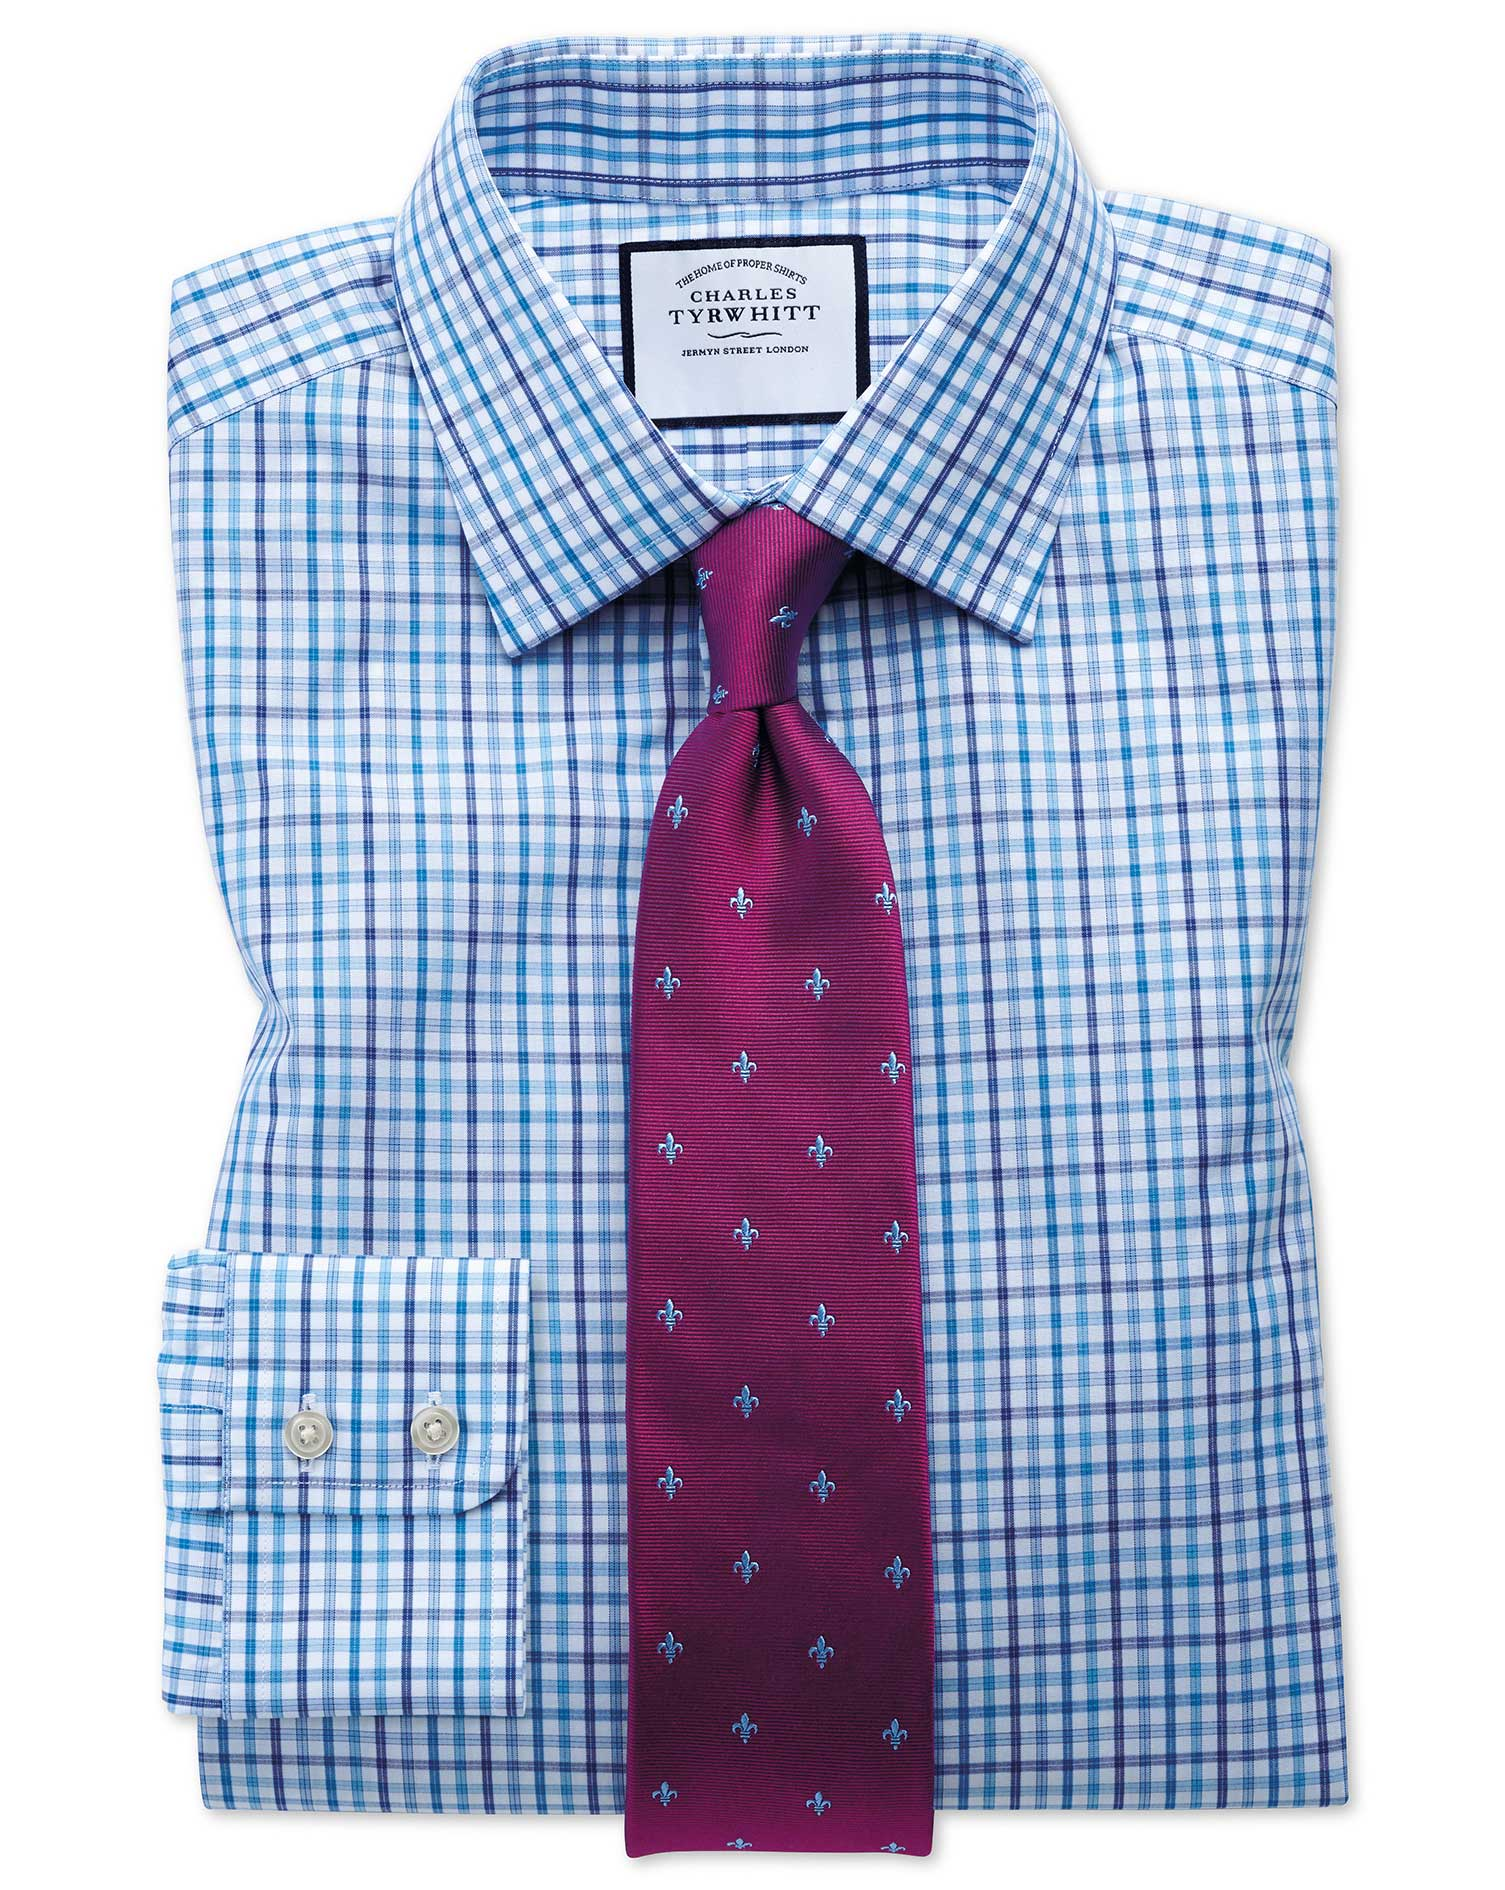 Extra Slim Fit Poplin Multi Blue Check Cotton Formal Shirt Single Cuff Size 15.5/32 by Charles Tyrwh